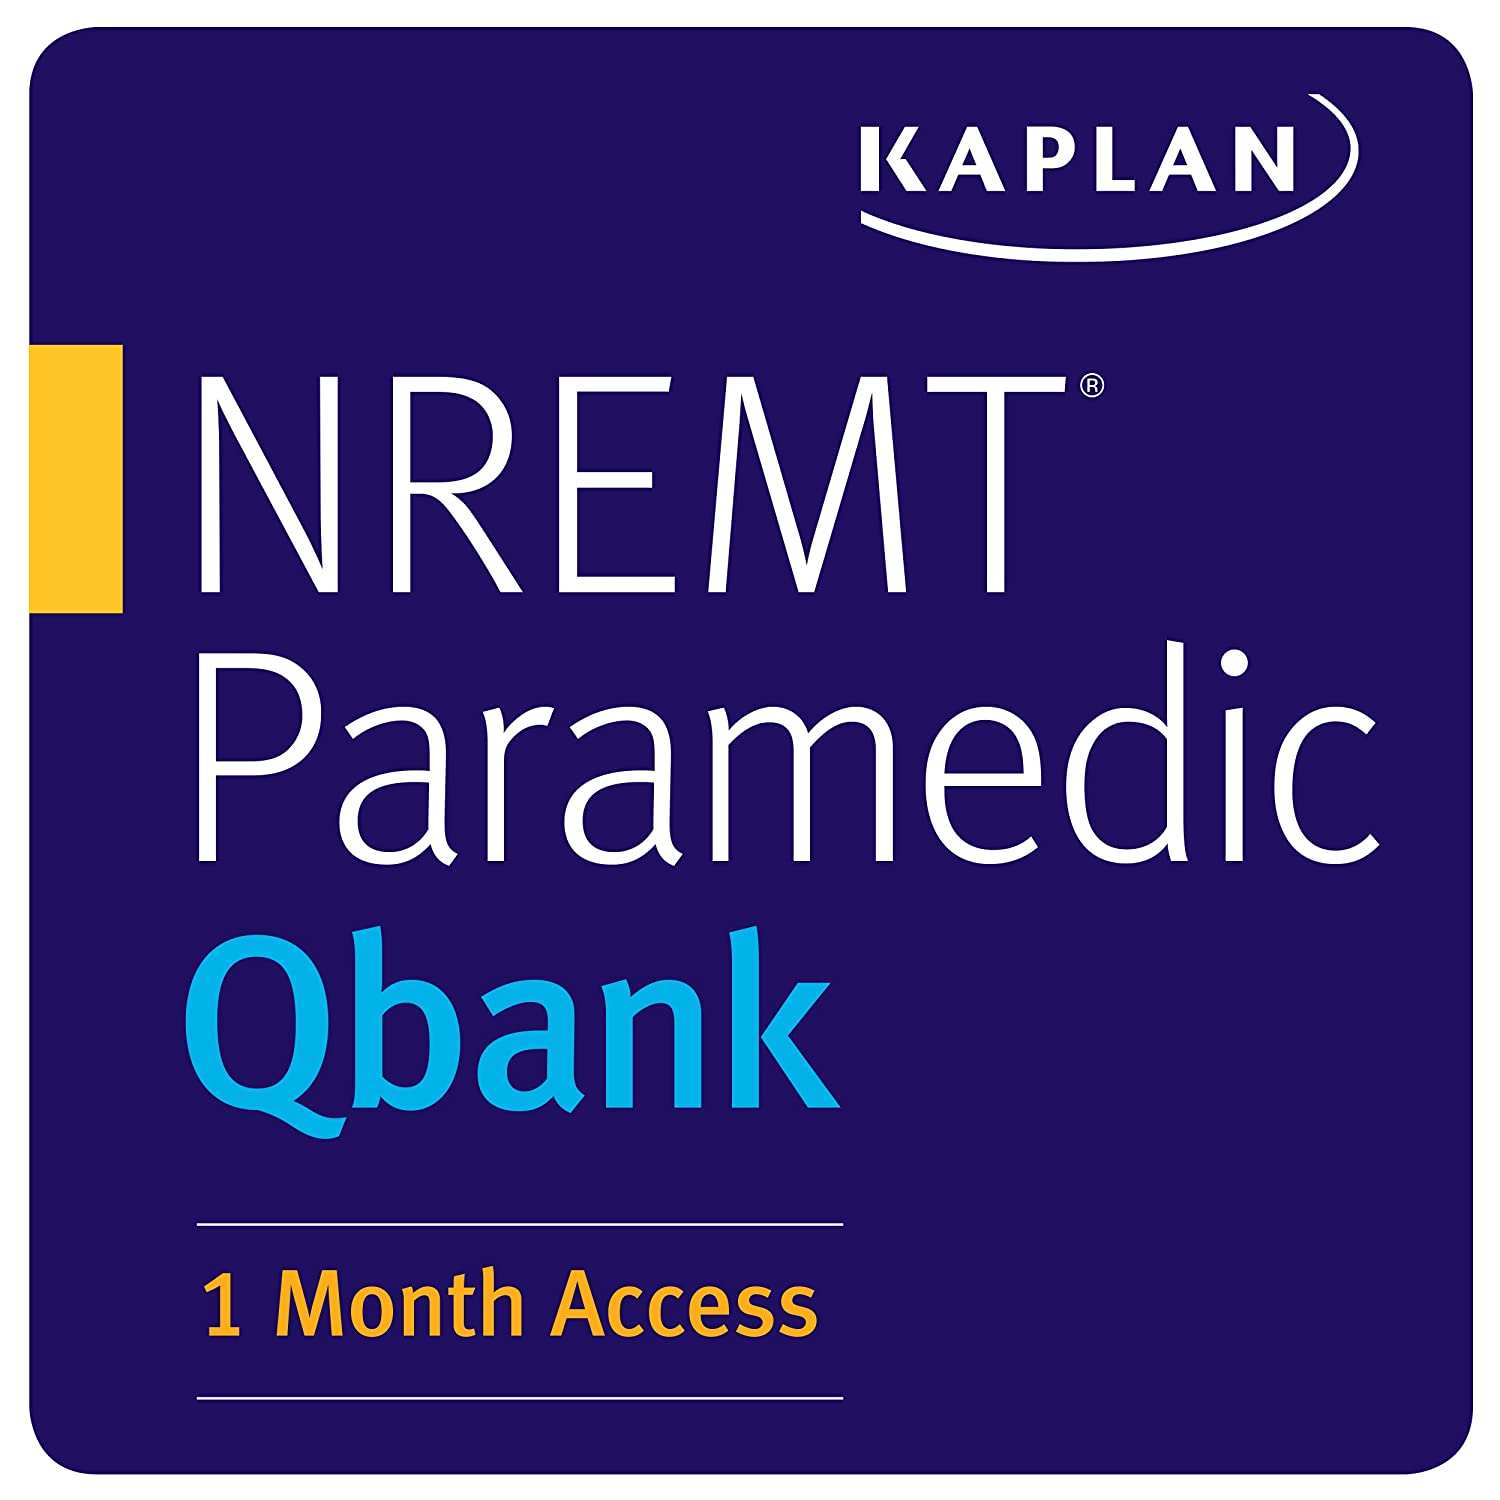 Amazon.com: NREMT Paramedic Qbank: Software